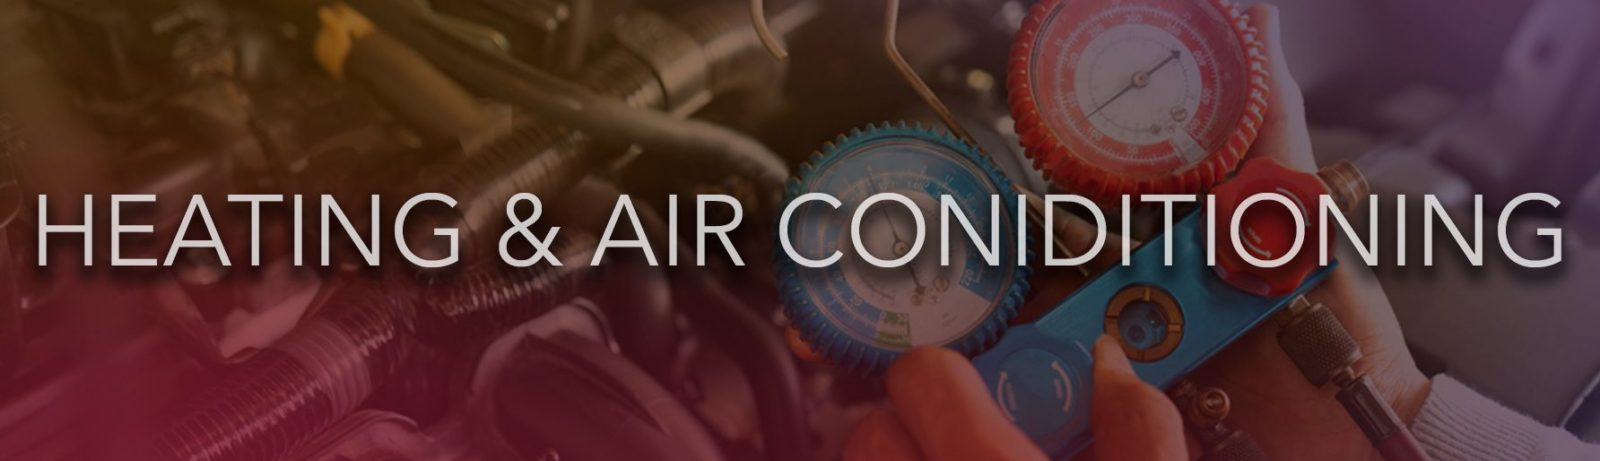 heating and air conditioning repair in Frederick, maryland